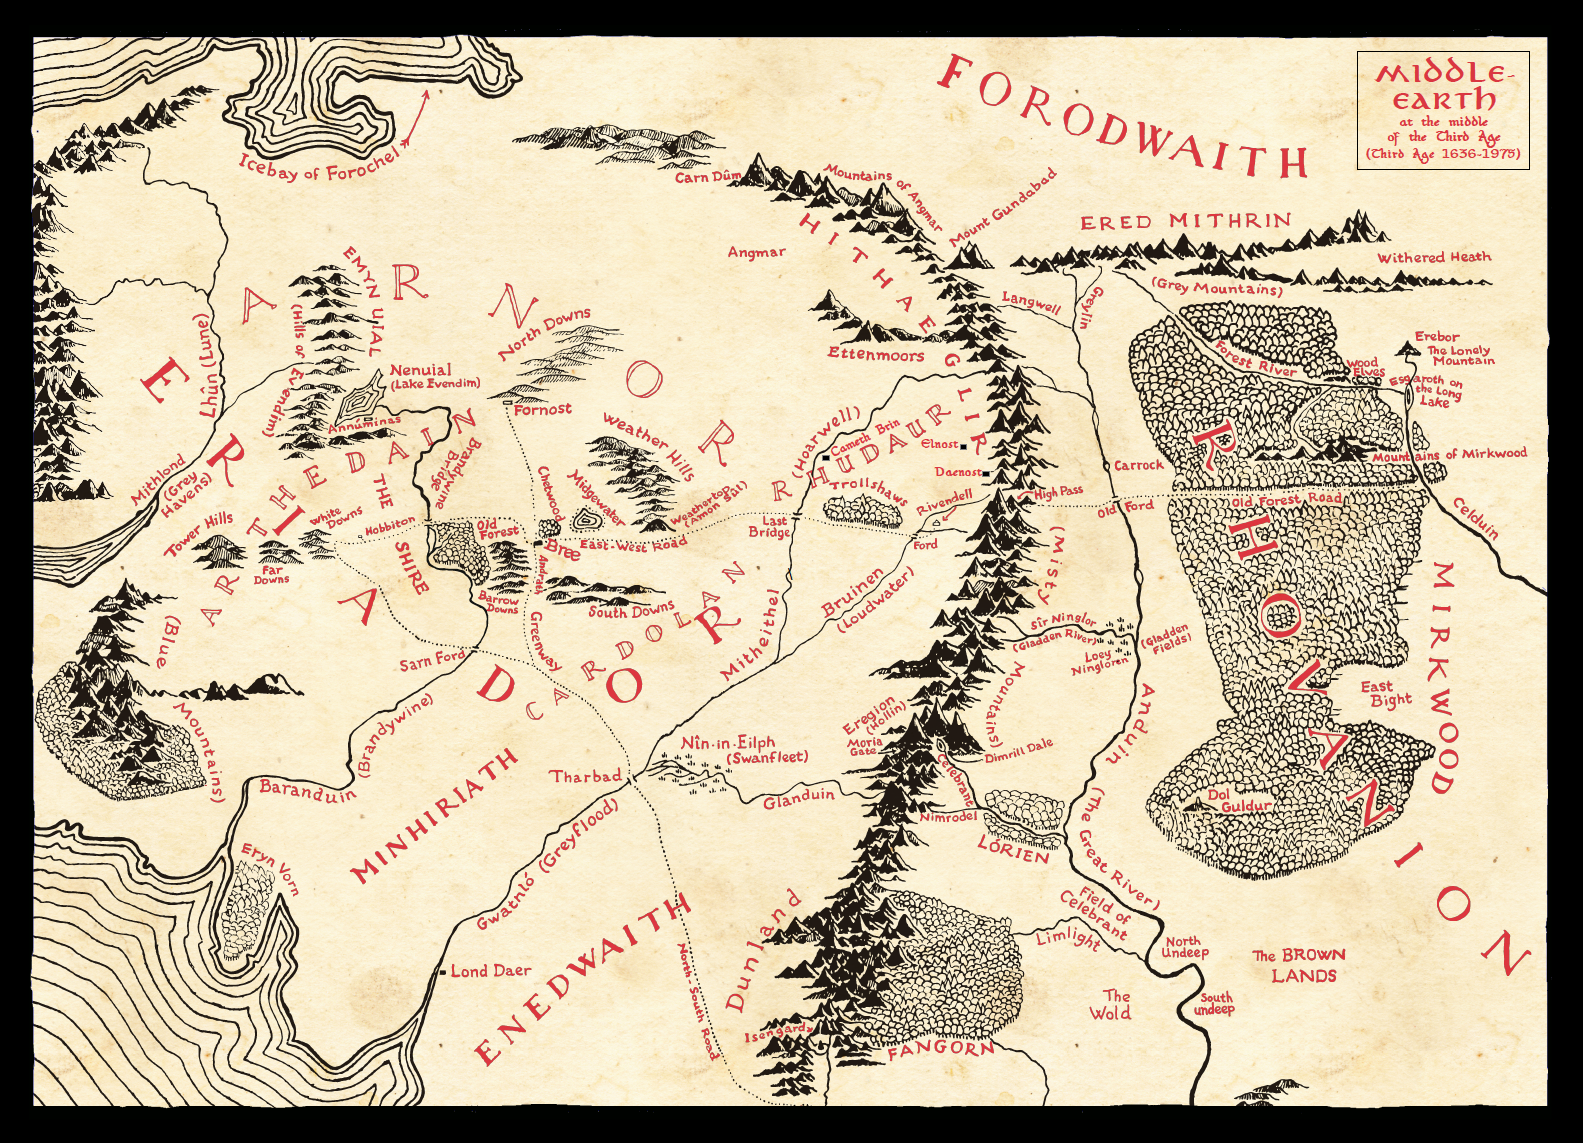 Middle-earth in T.A. 1640